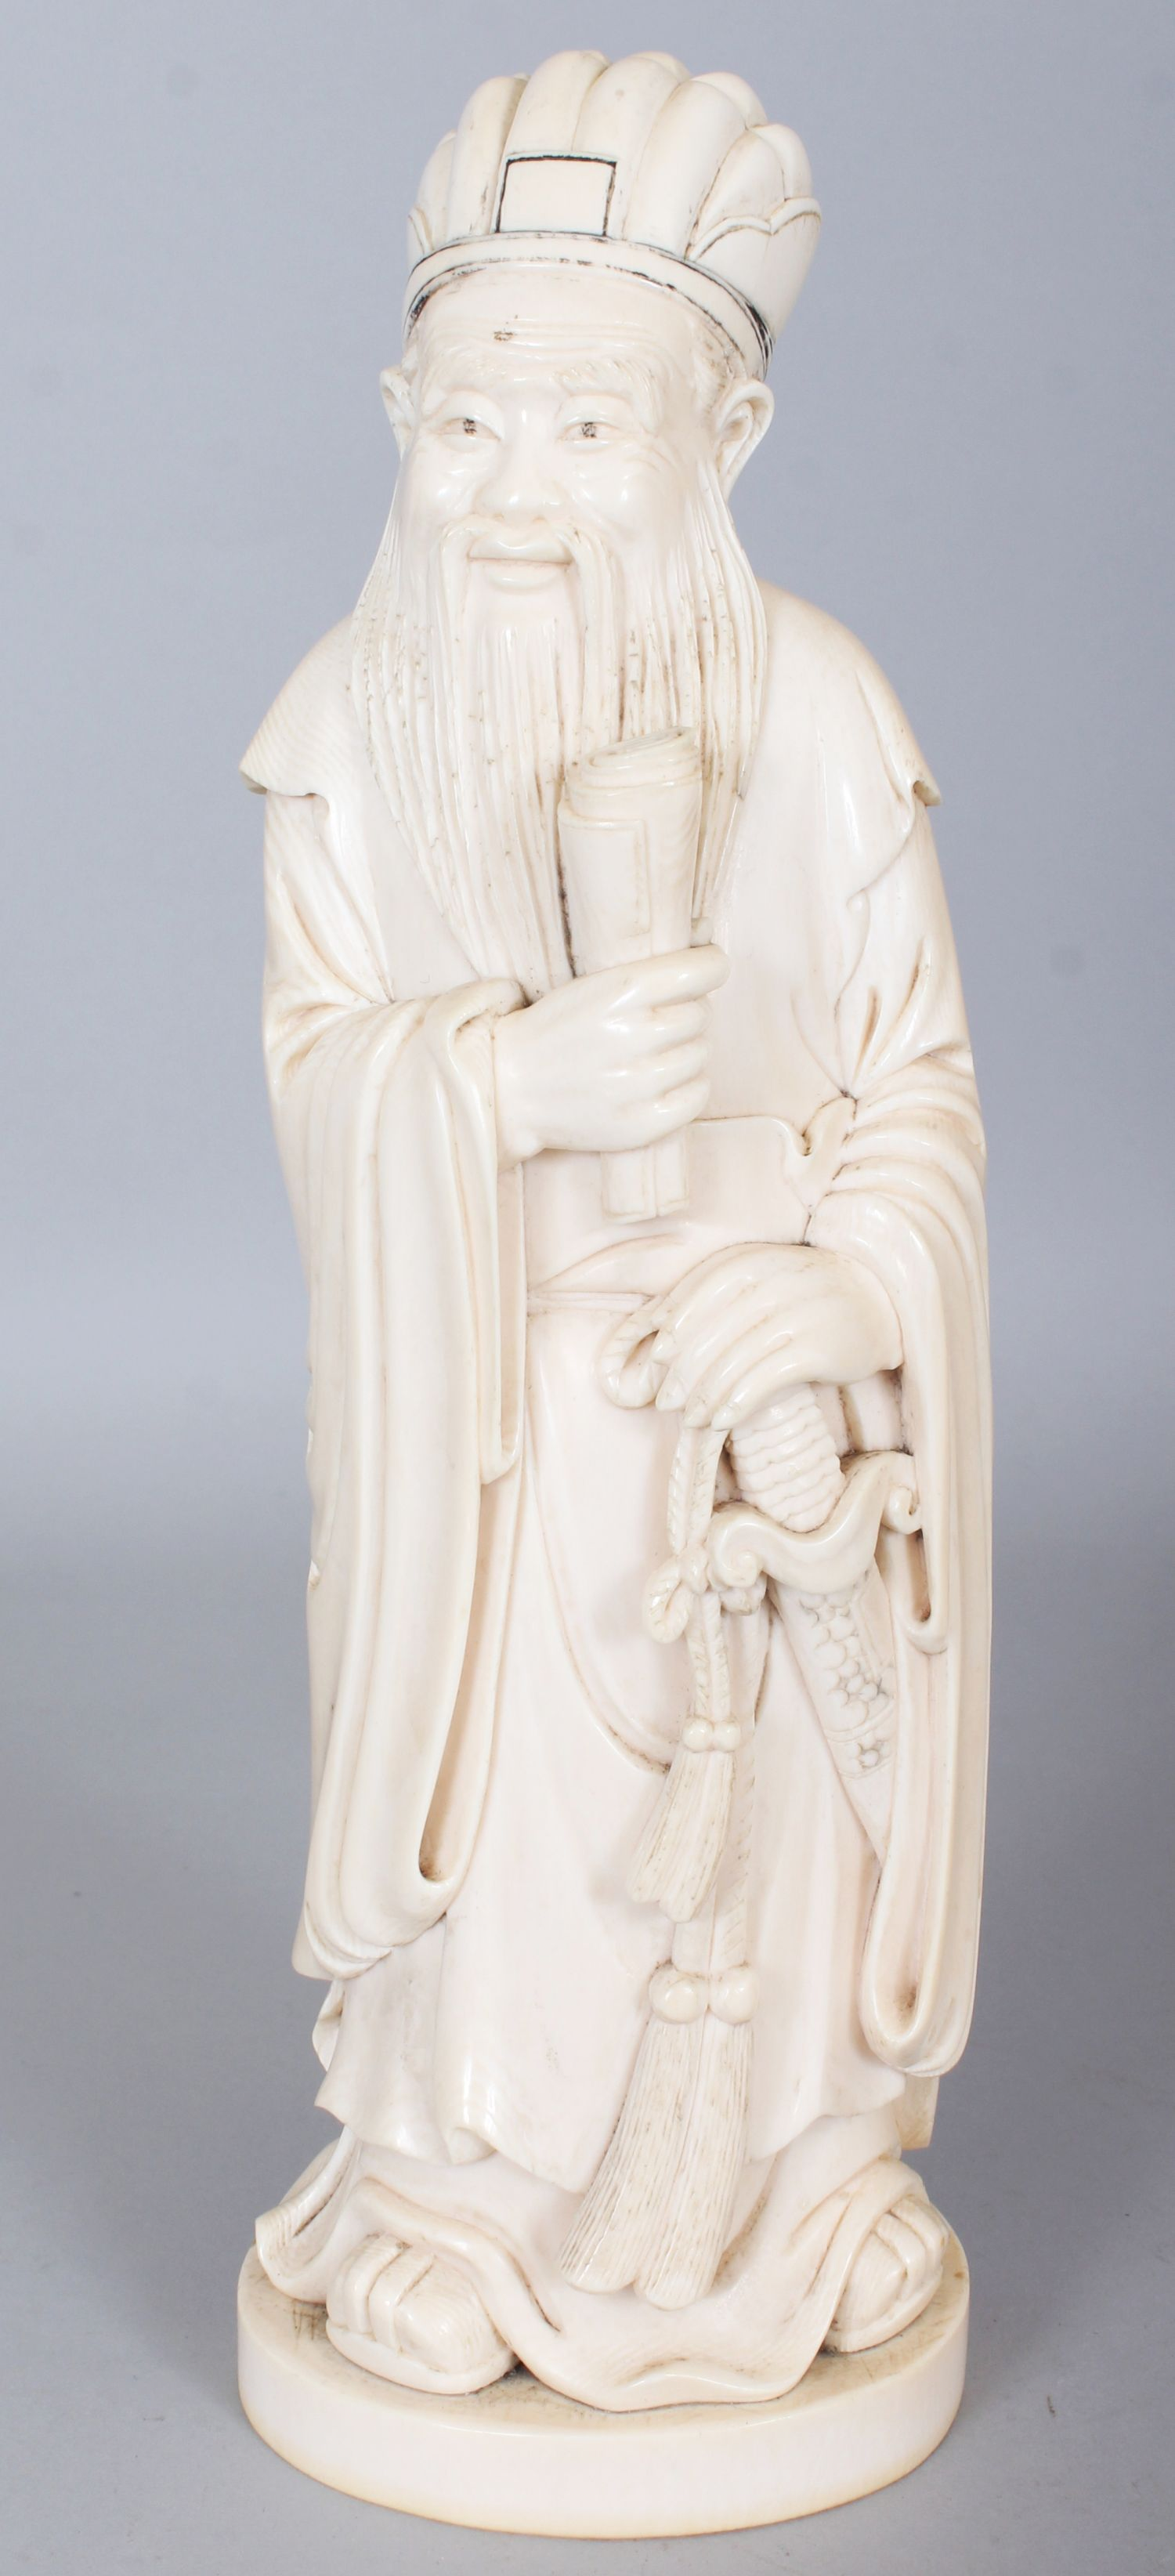 b2c3d4049 Lot 425 - A GOOD LARGE EARLY 20TH CENTURY CHINESE CARVED IVORY FIGURE OF A  STANDING ...